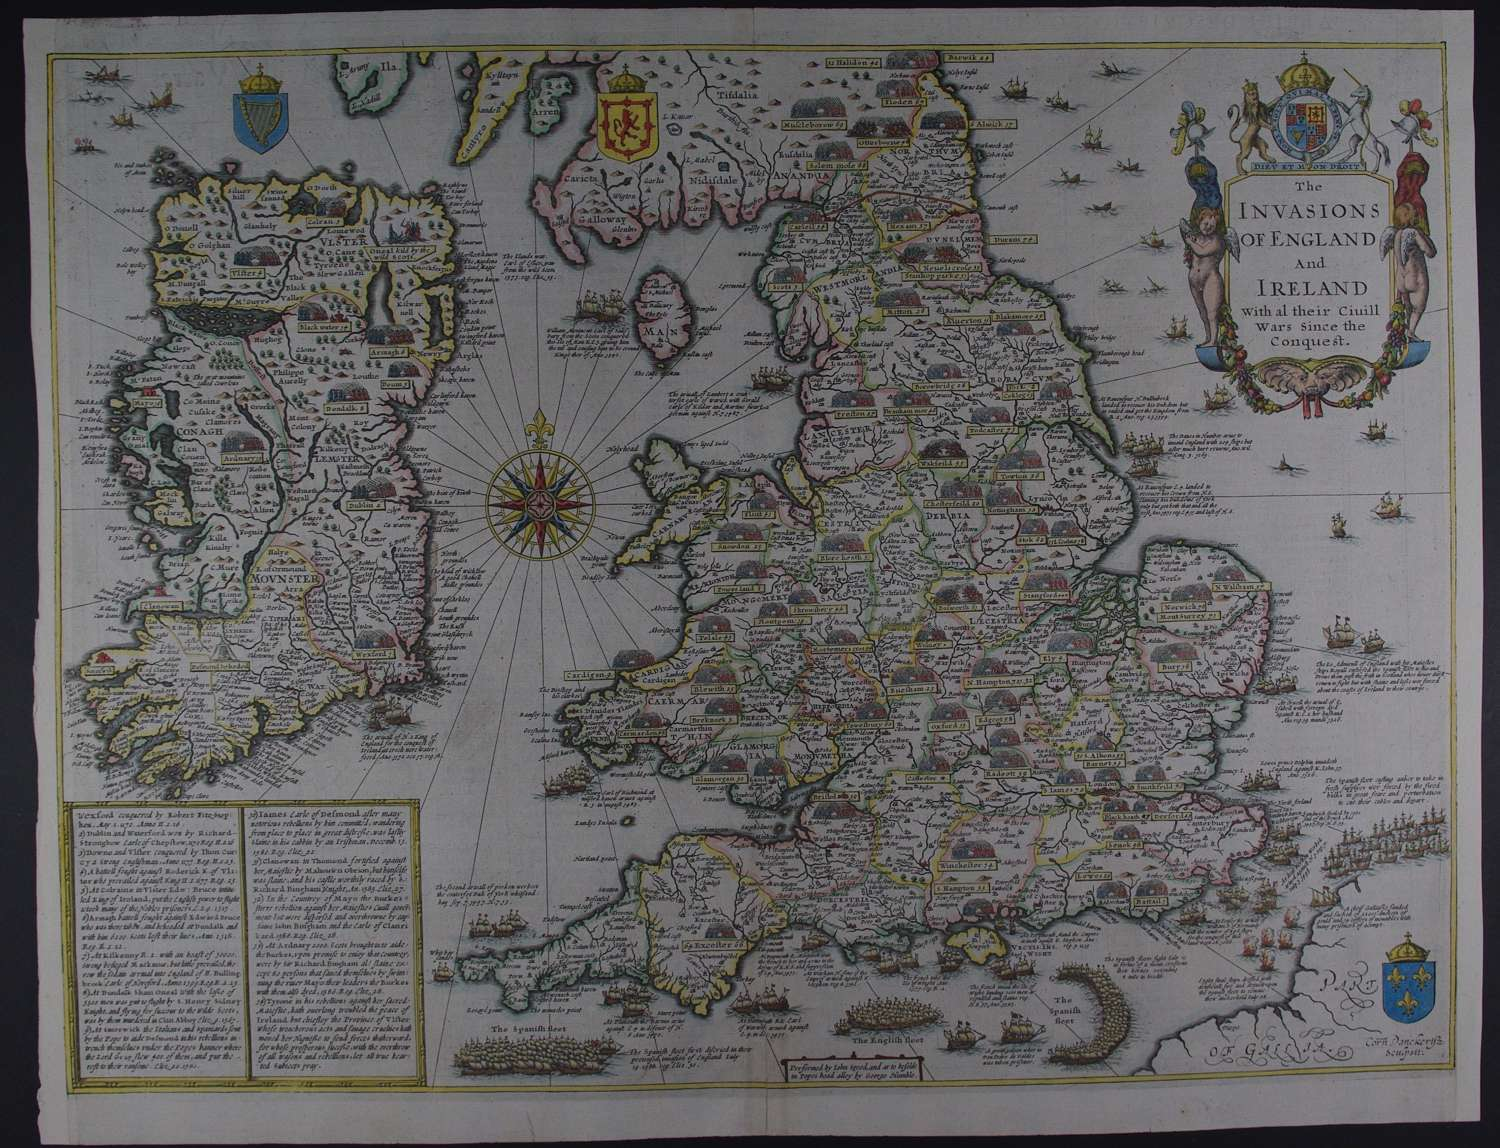 The Invasions of England and Ireland by John Speed